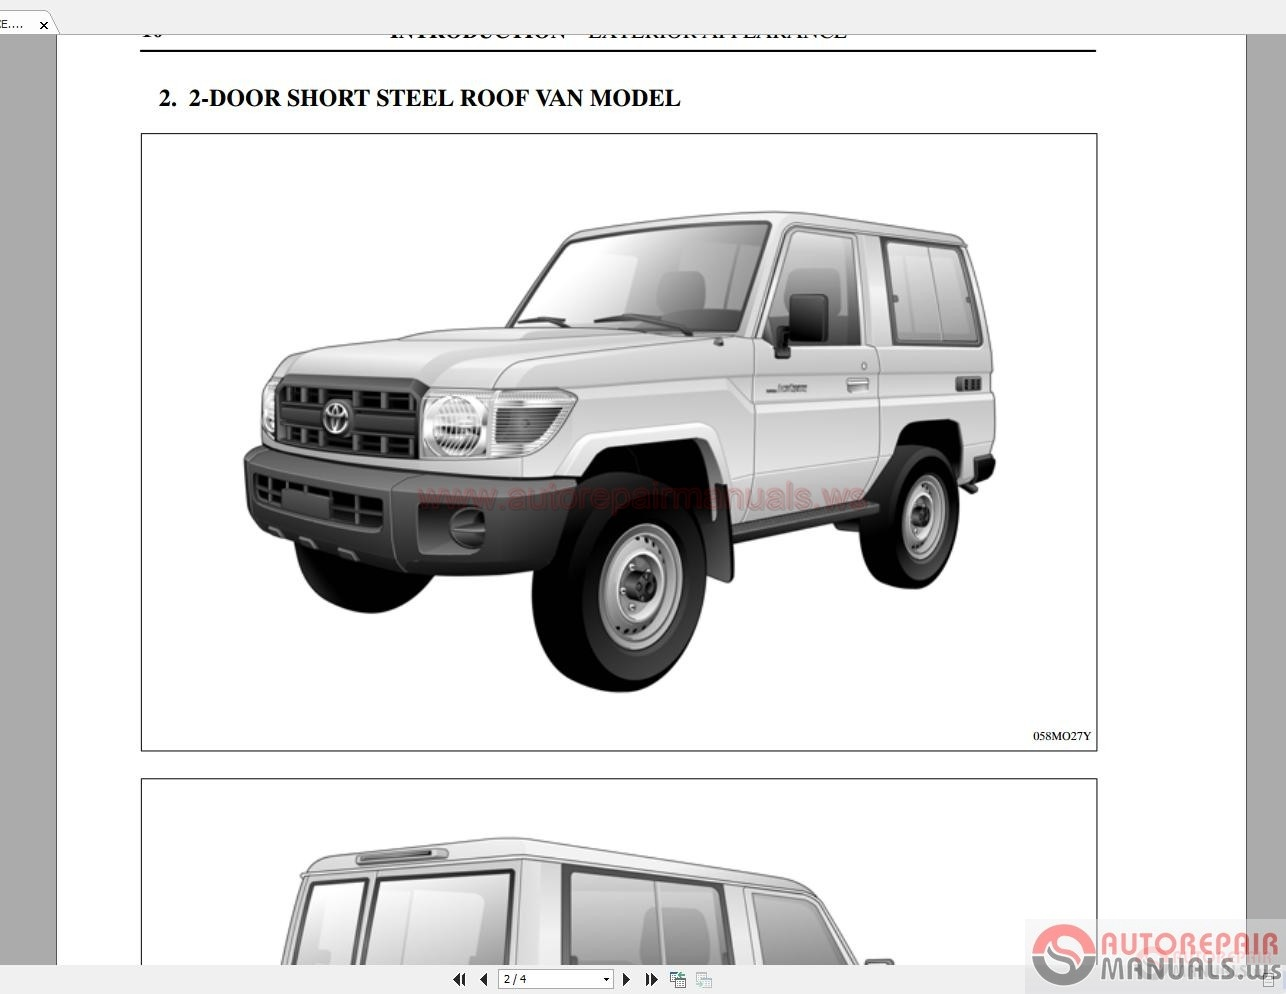 1984 TOYOTA LAND CRUISER CHASSIS Service Shop Repair Manual BRAND NEW HEAVY DUTY